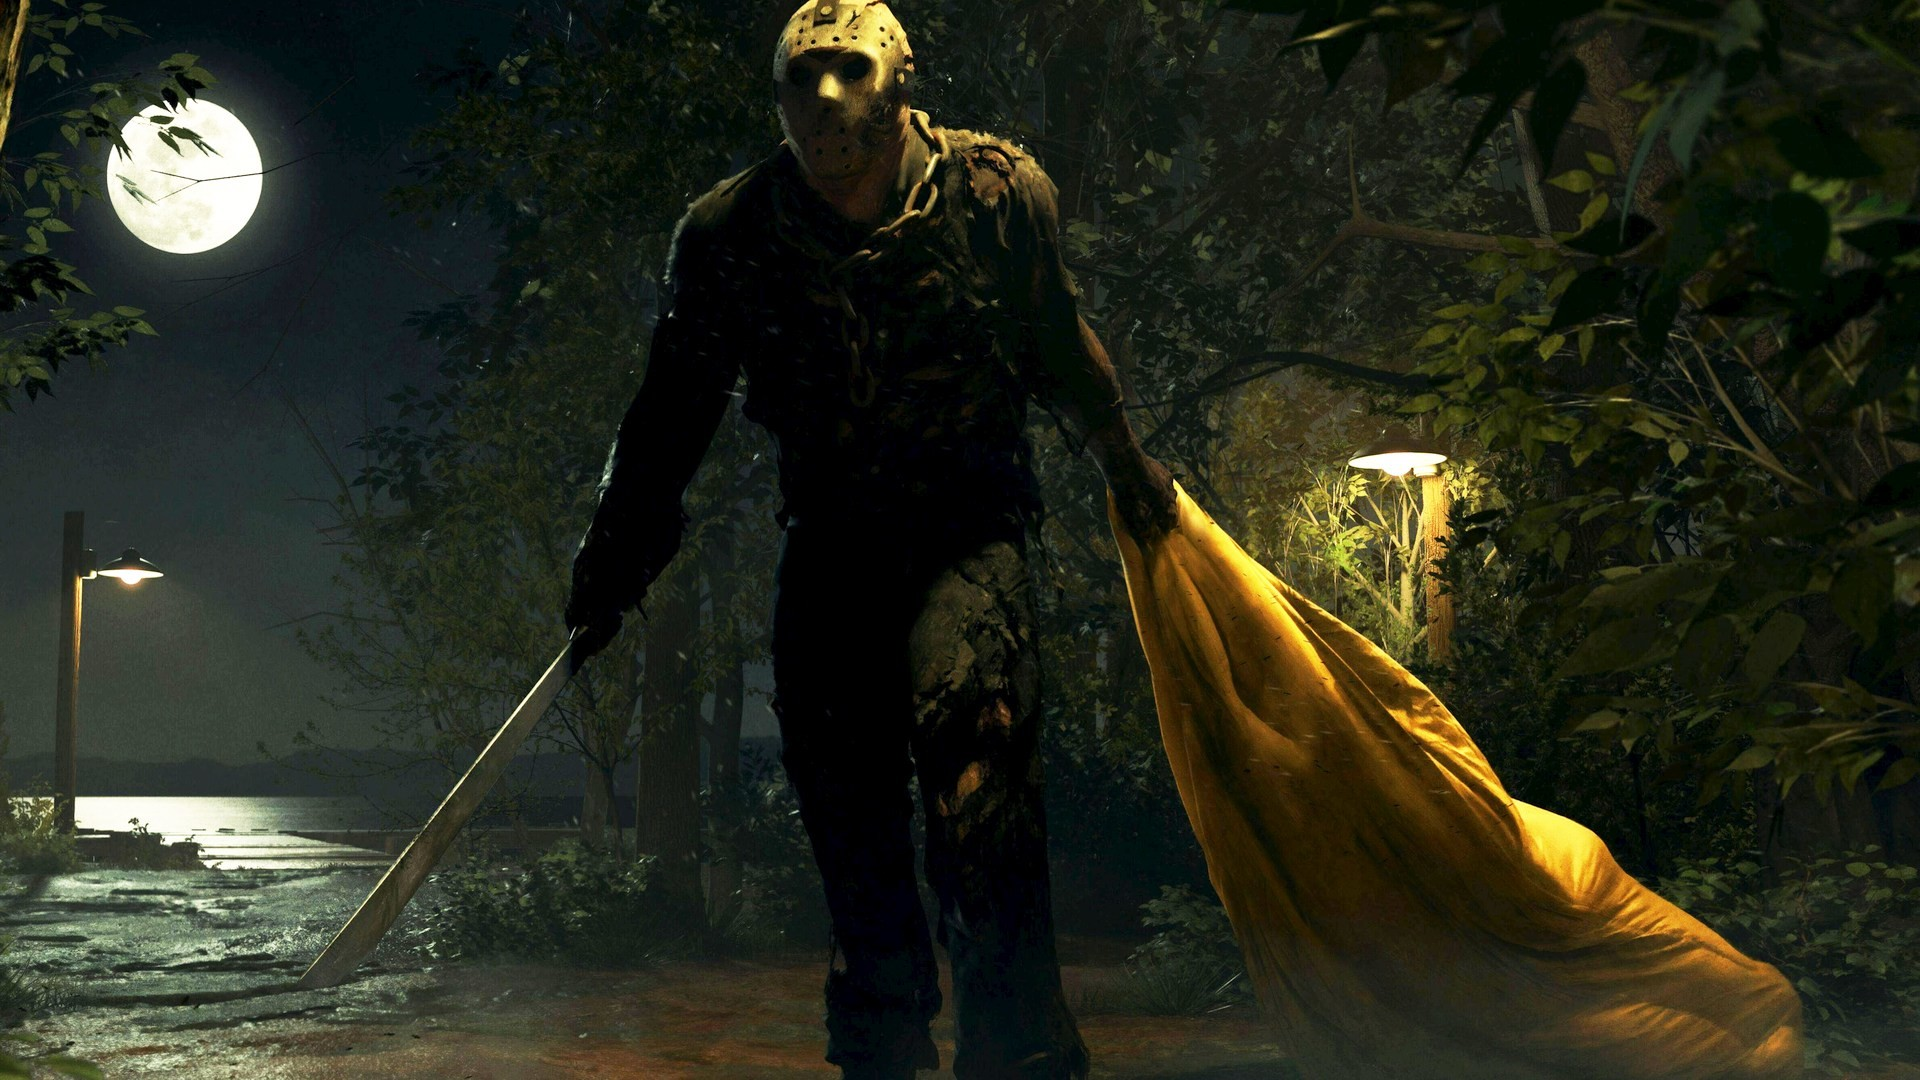 Res: 1920x1080, Friday the 13th: The Game HD Wallpapers 11 - 1920 X 1080